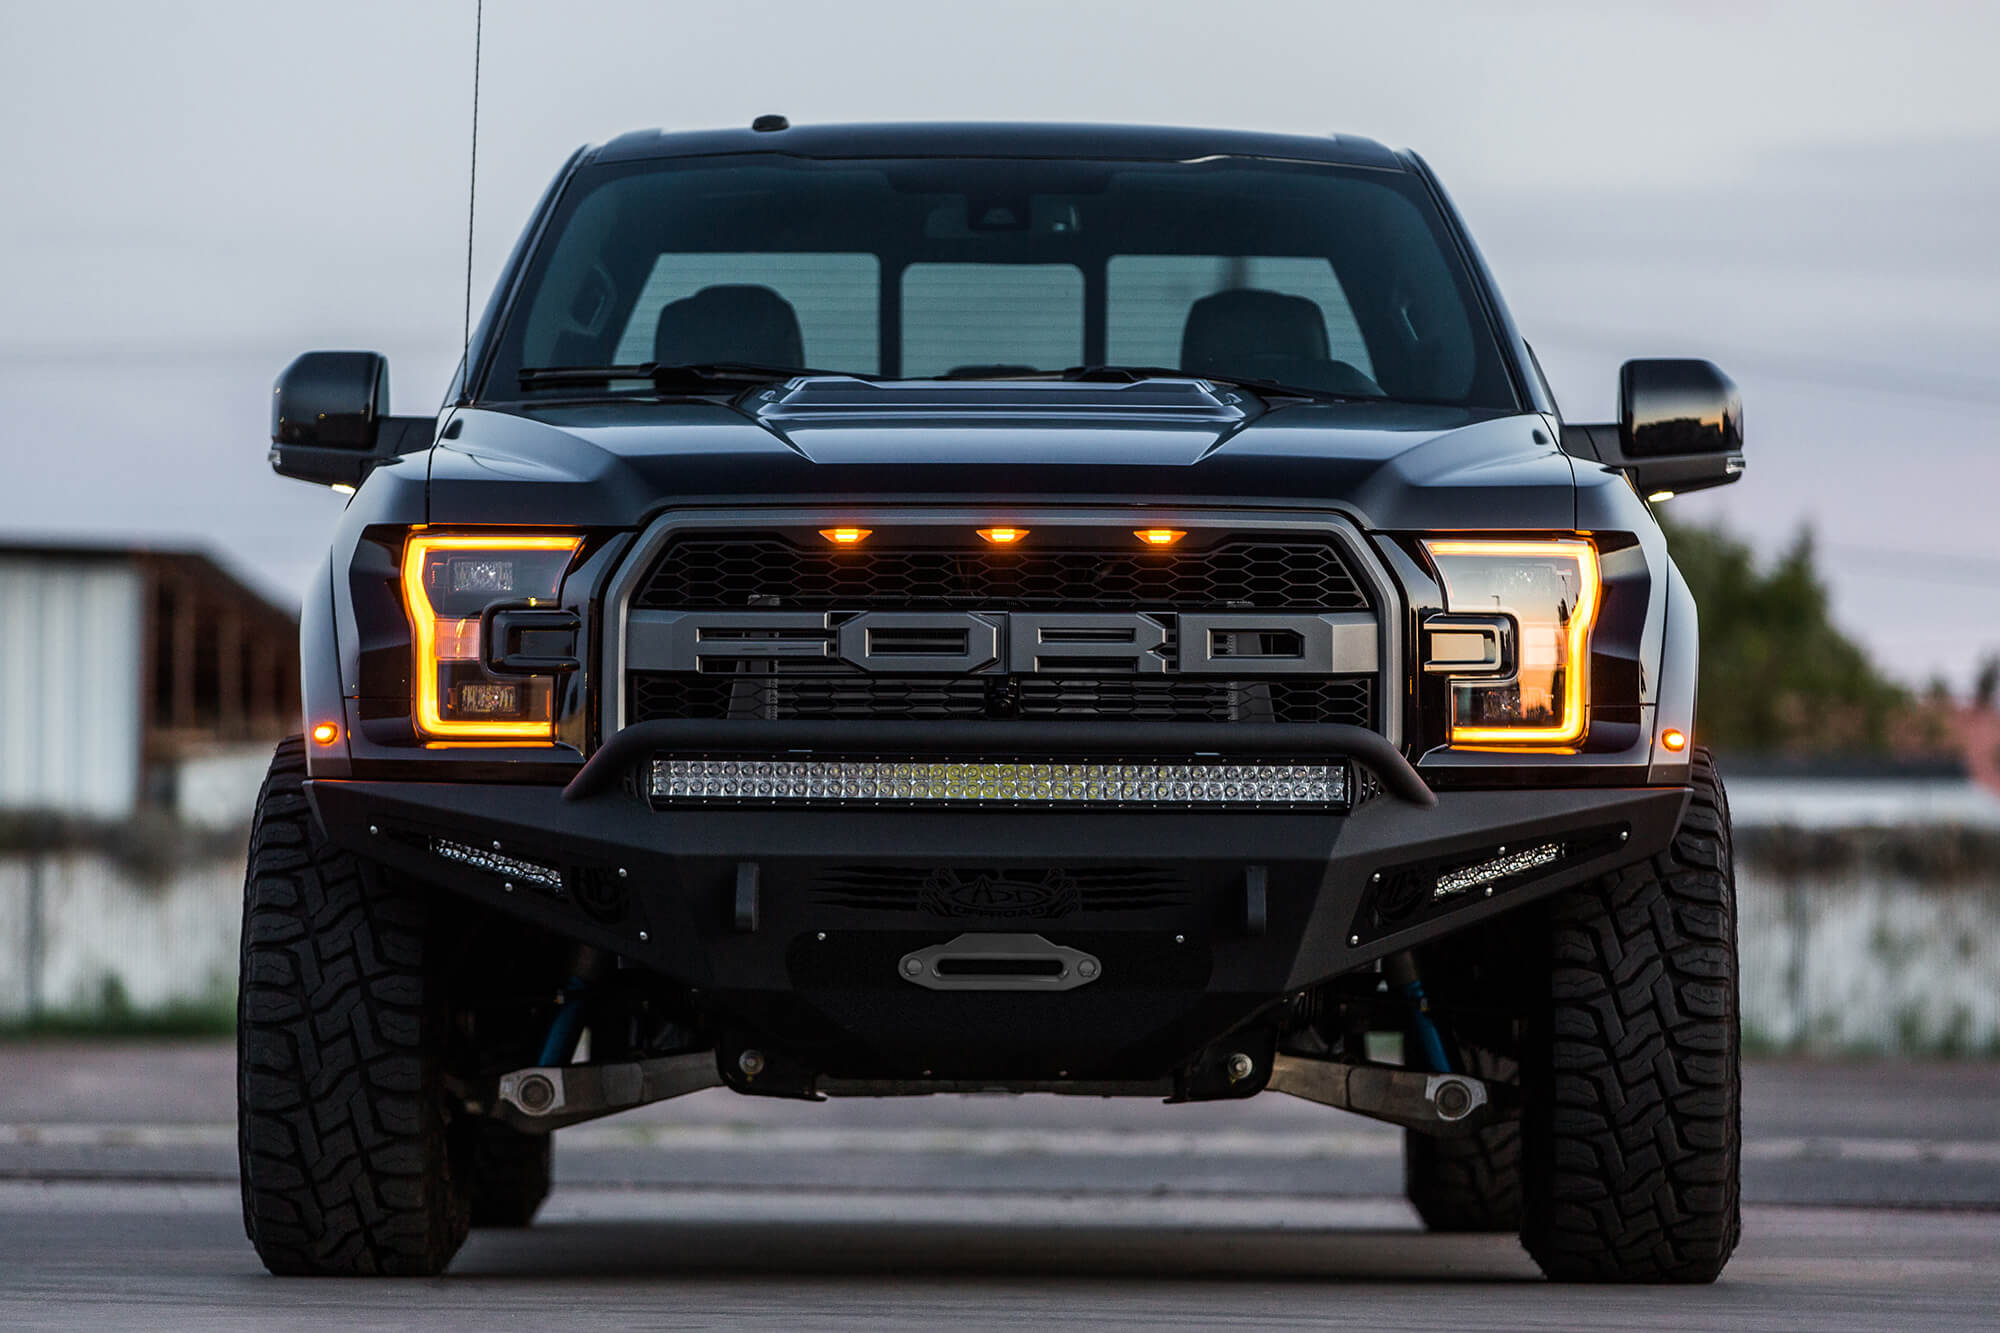 I have to admit, thats a great looking front end. Its an aftermarket bumper and winch but still. Photo: addictivedesertdesigns